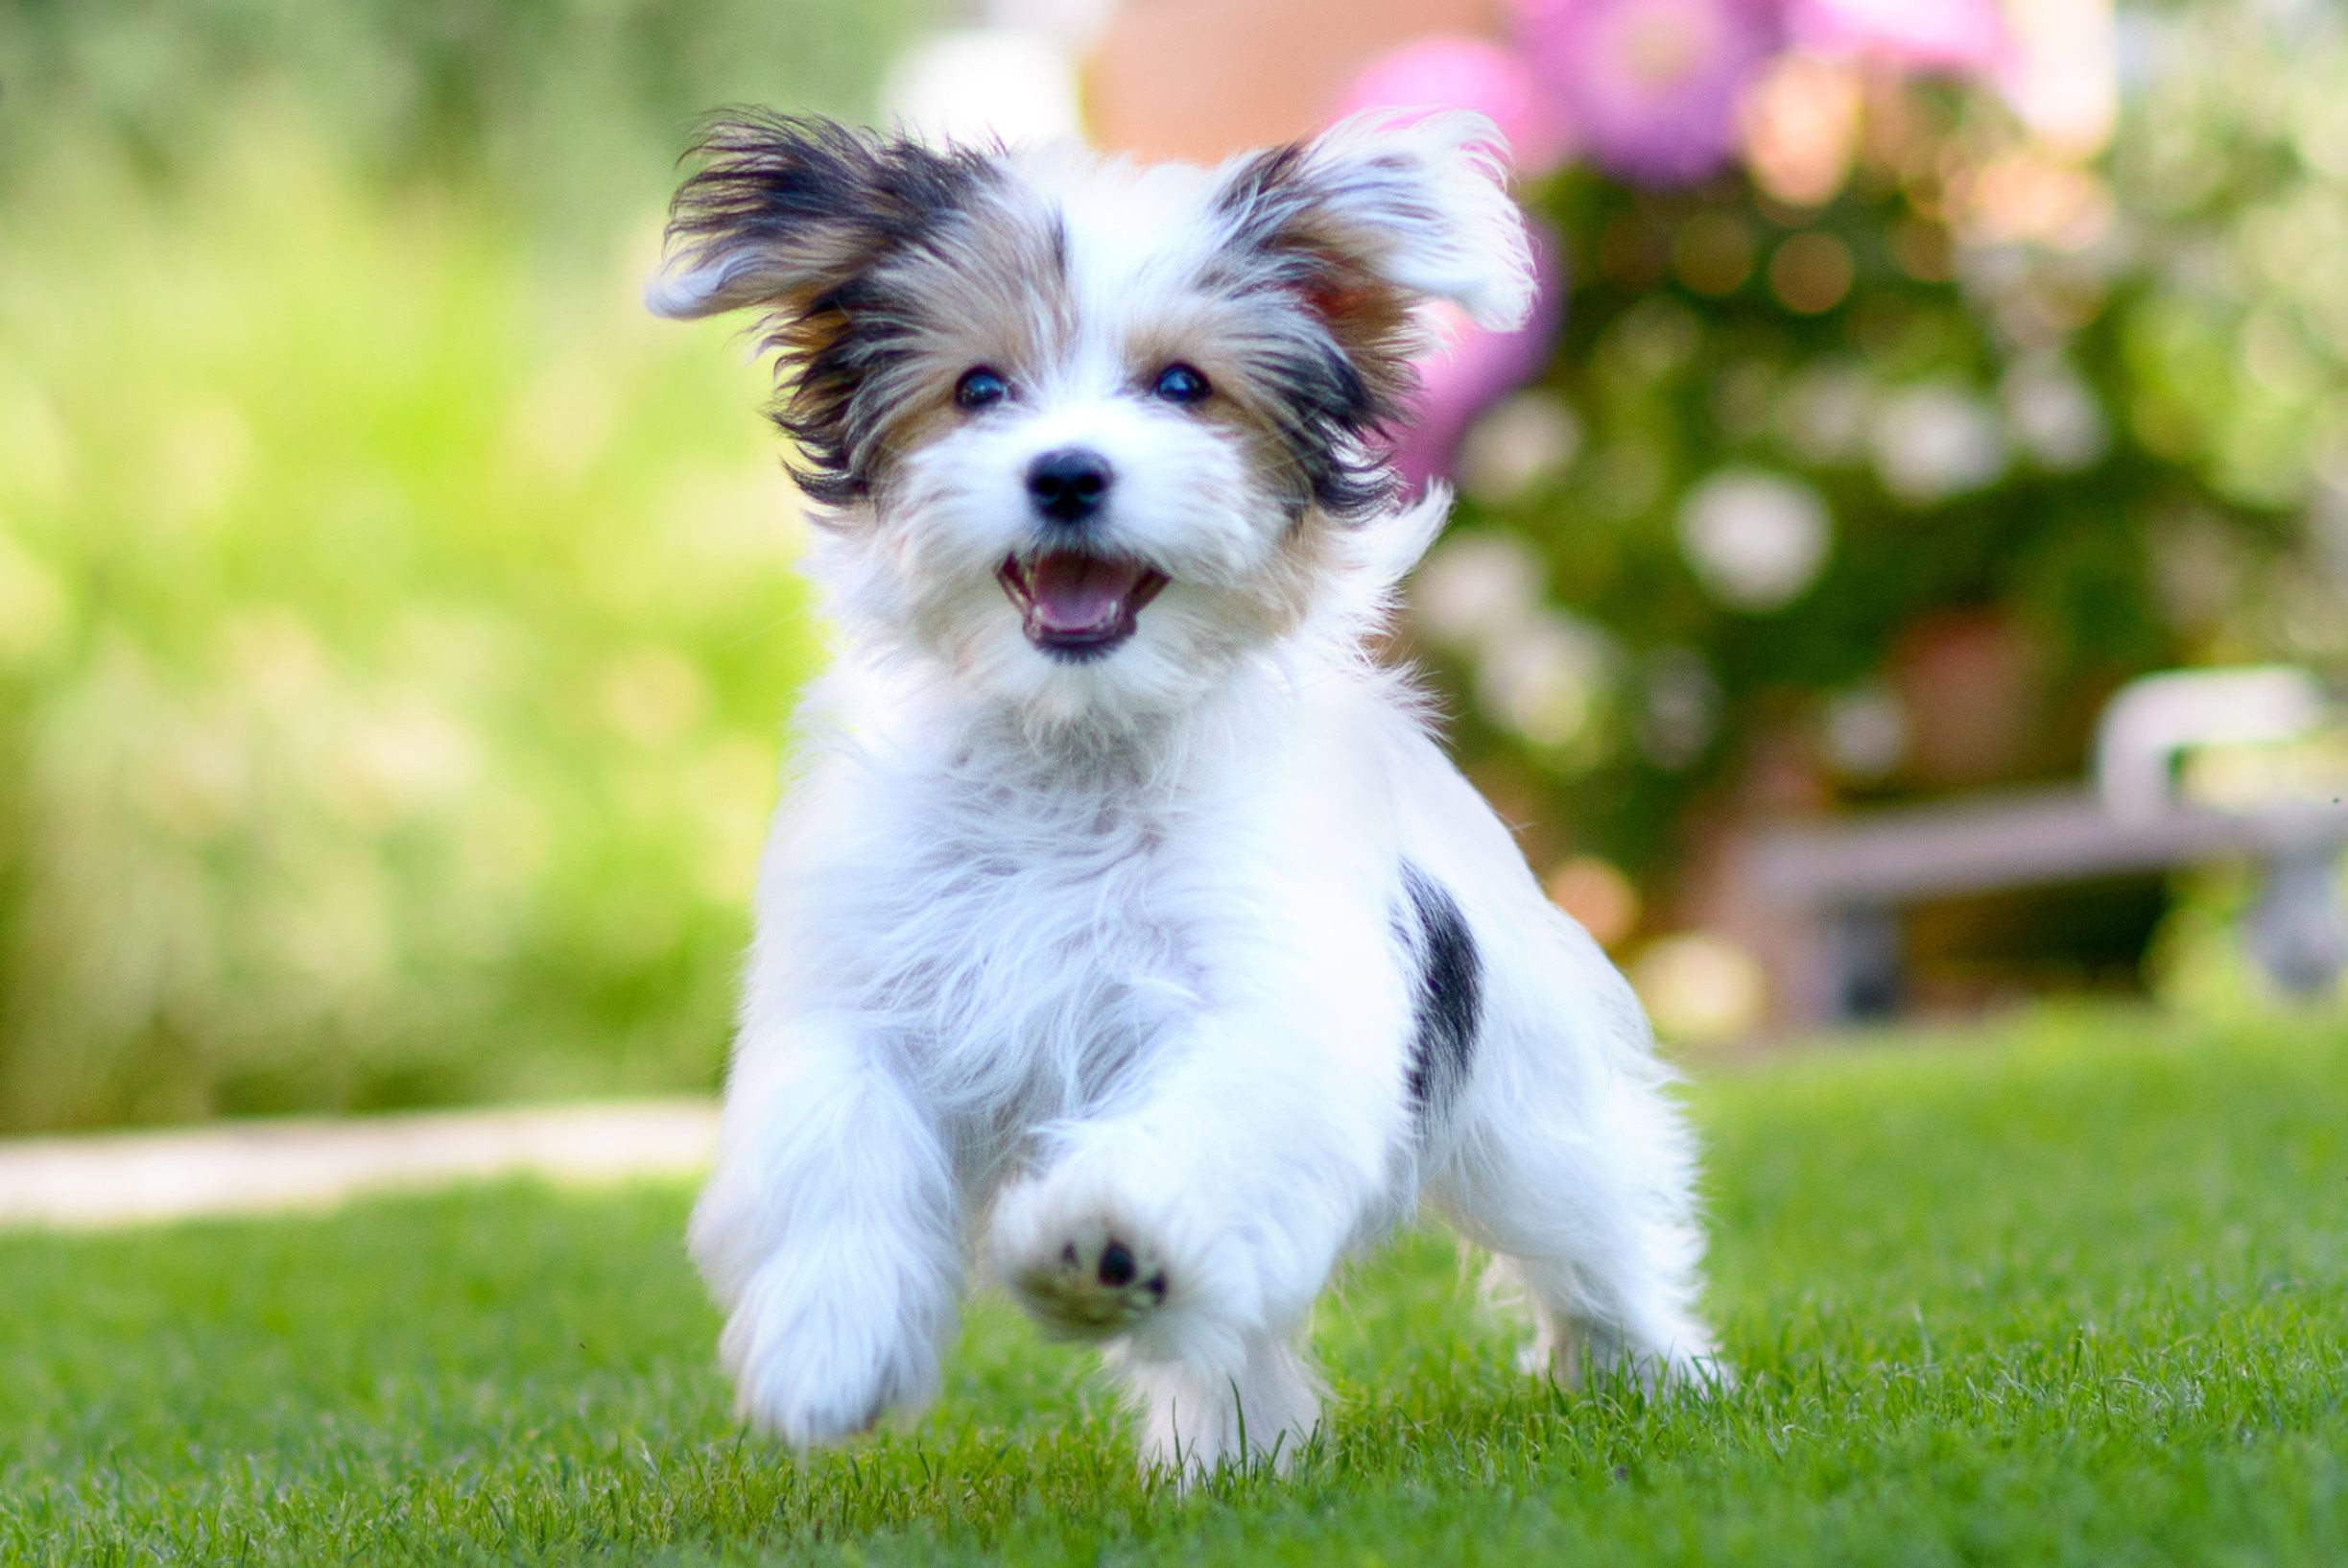 Formulation for growing puppies